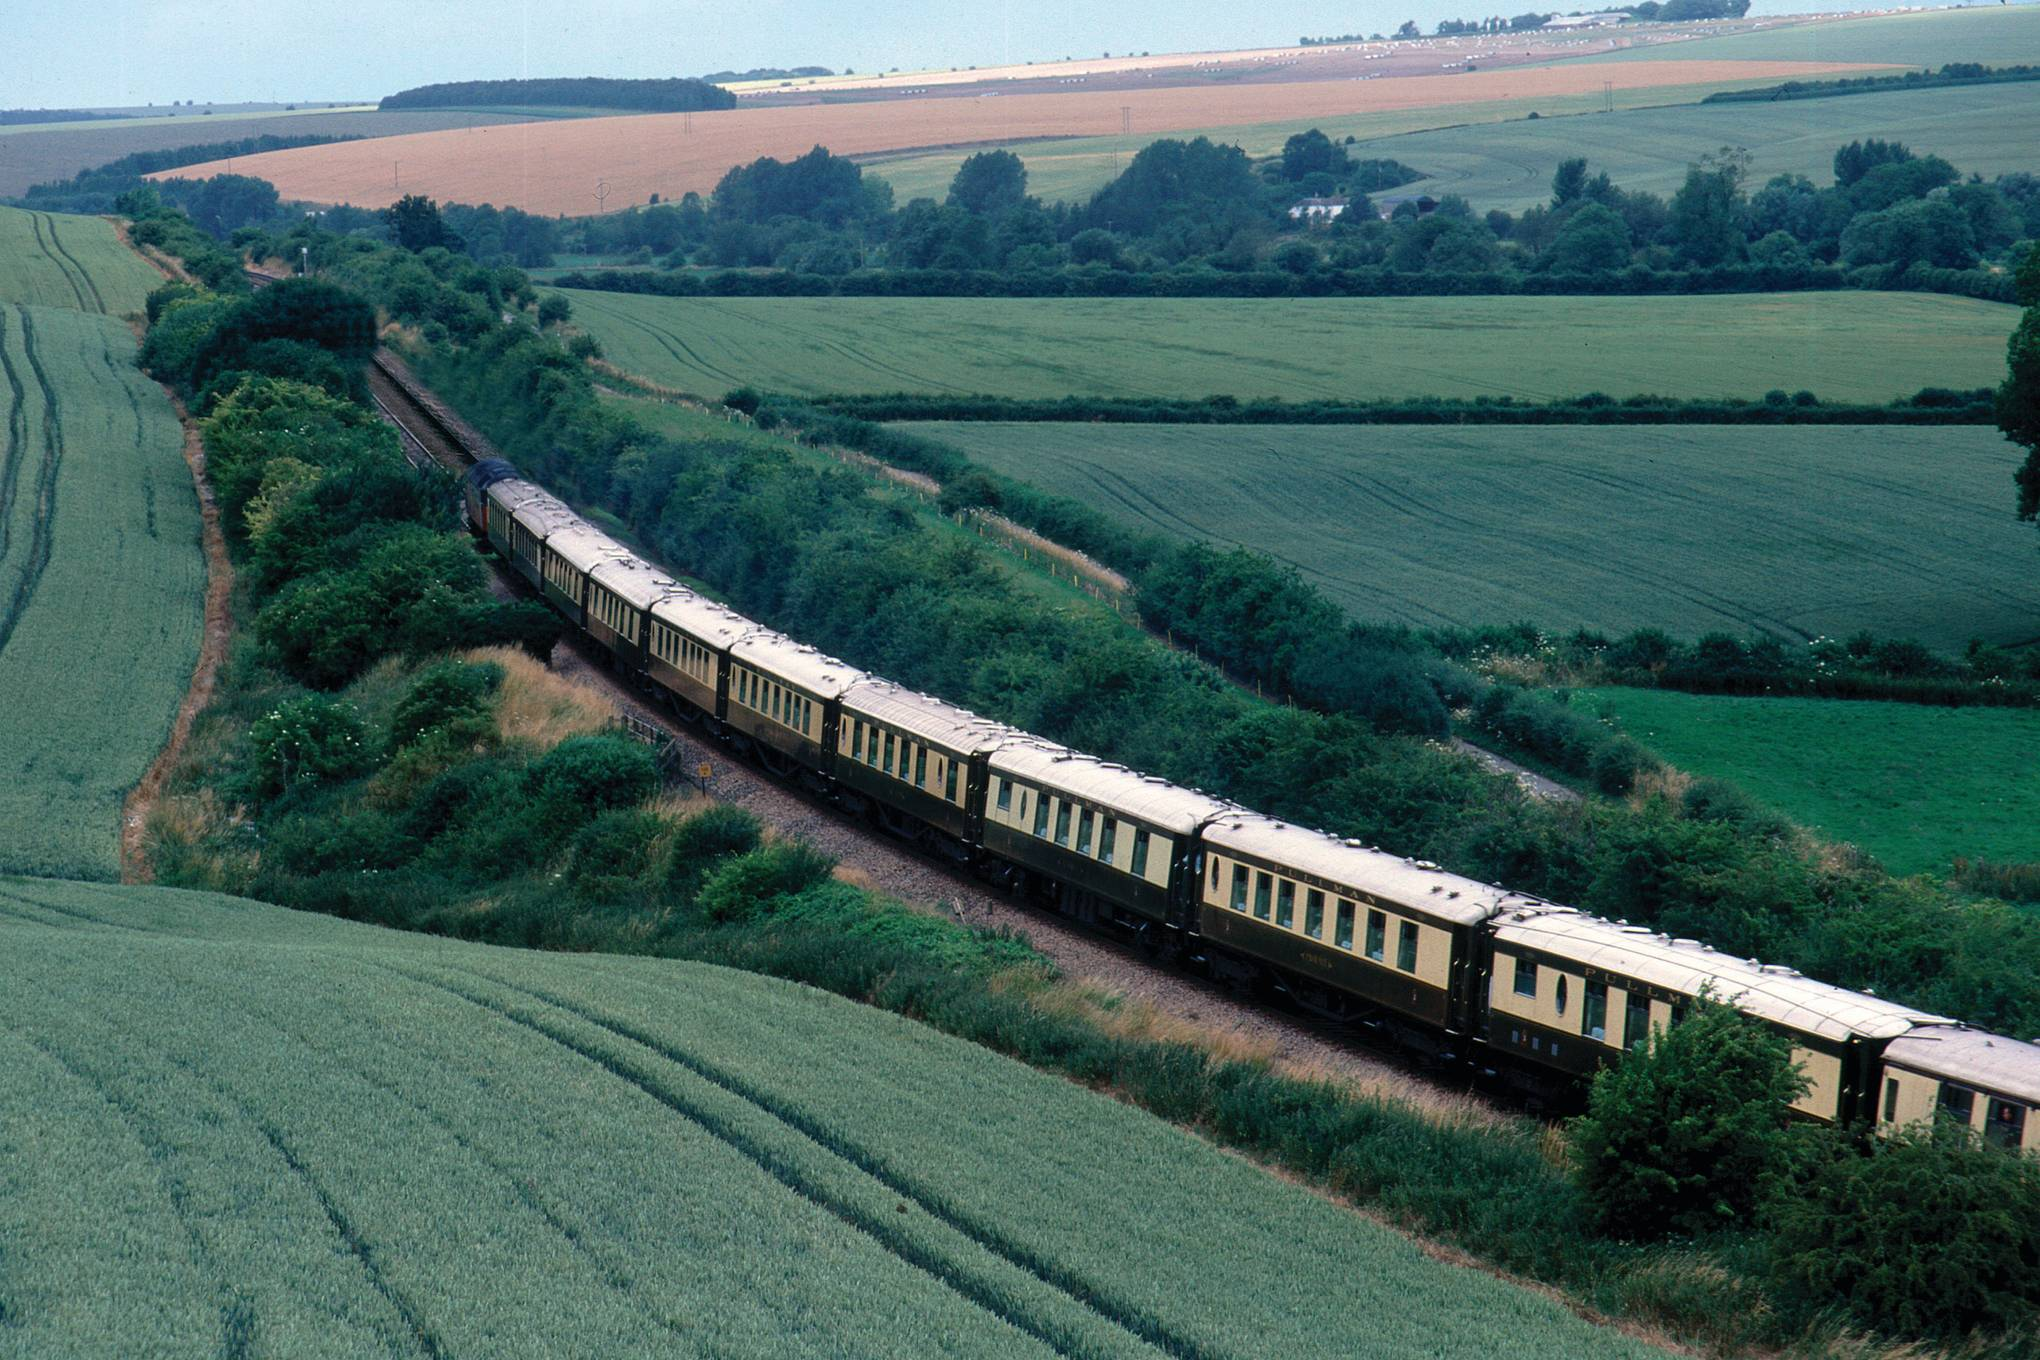 Win a trip on the UK's grandest train, the Belmond British Pullman